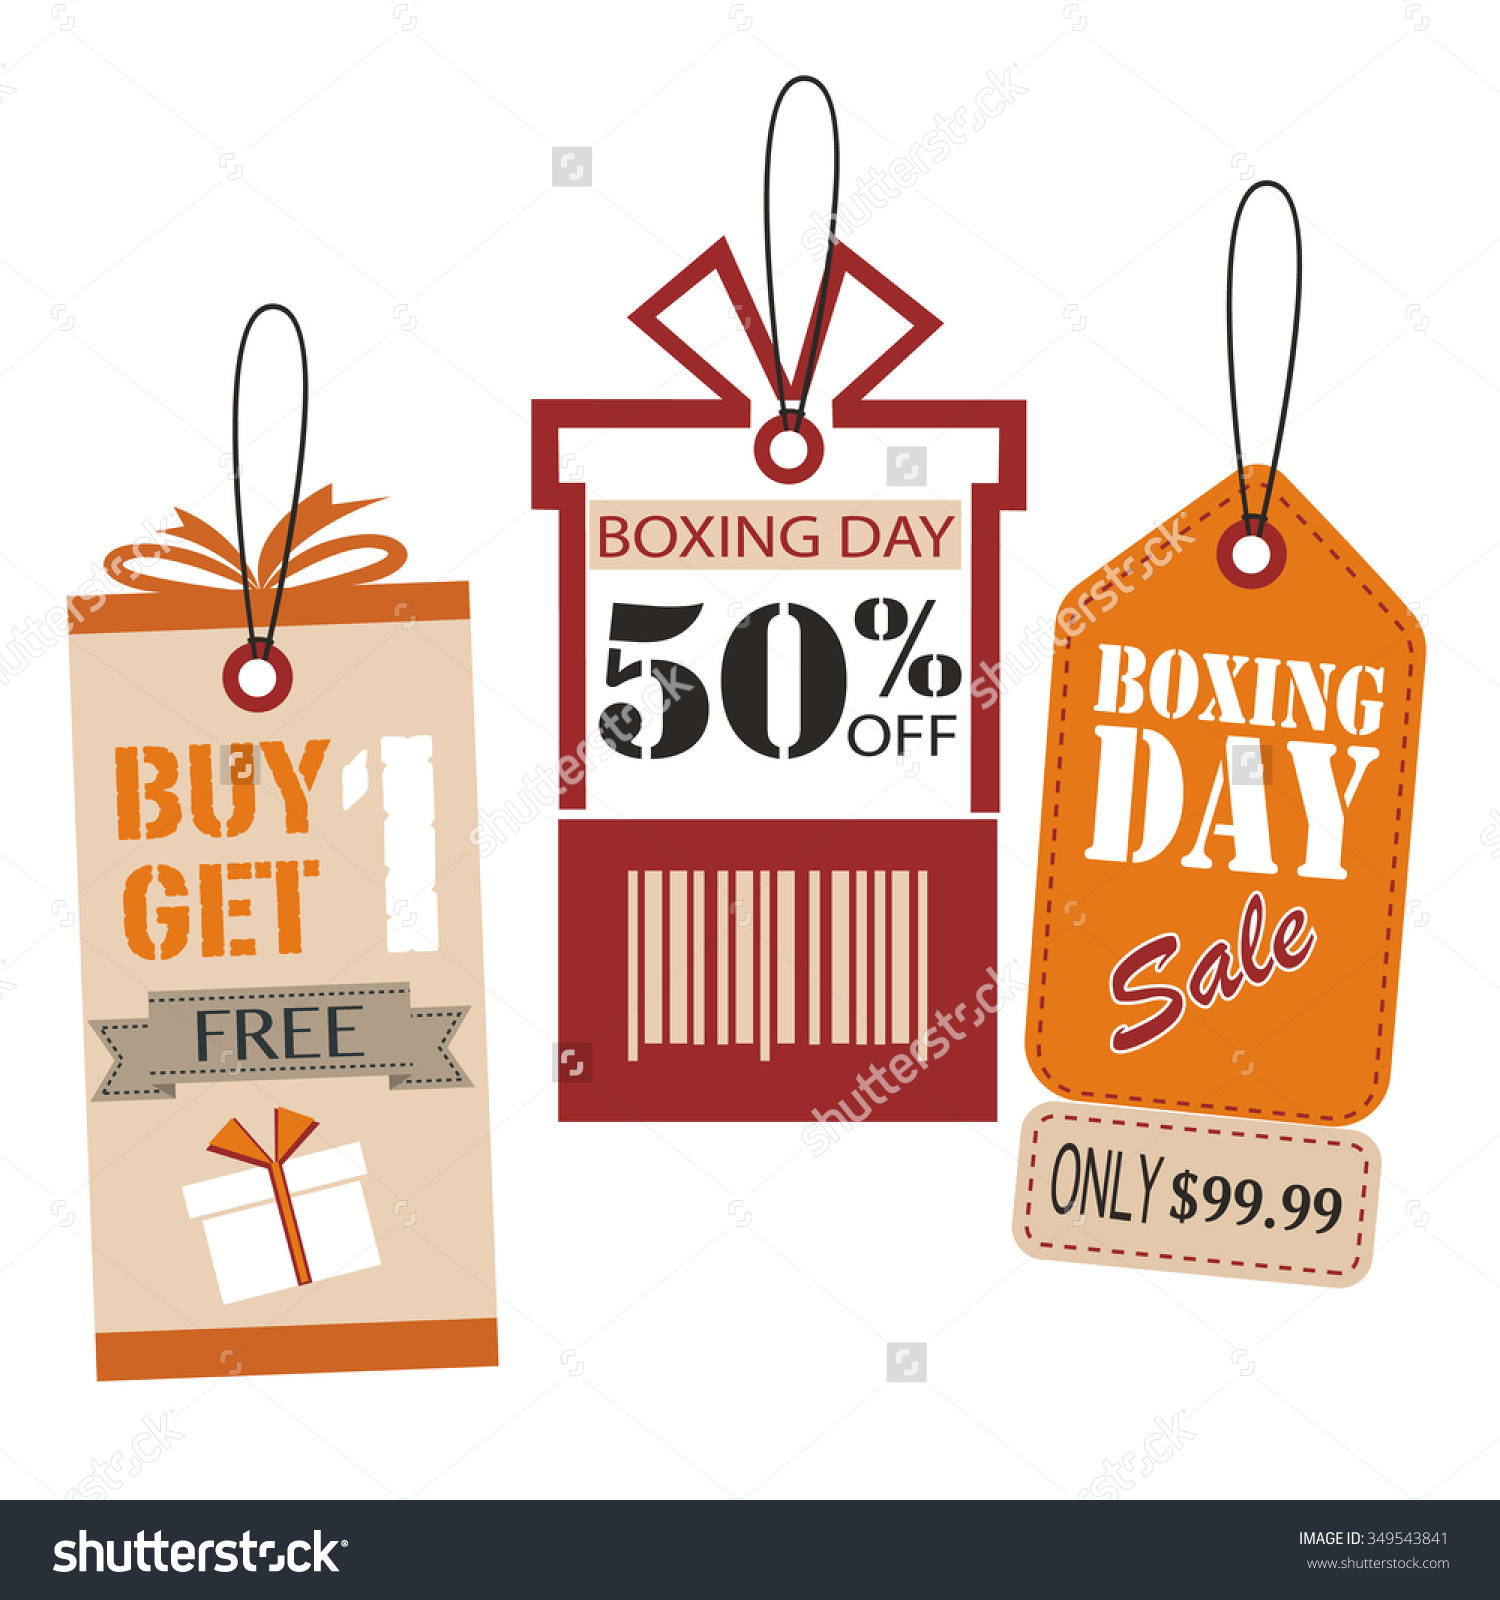 Price Tags Design Set. Boxing Day Price Tags Design. Vector.